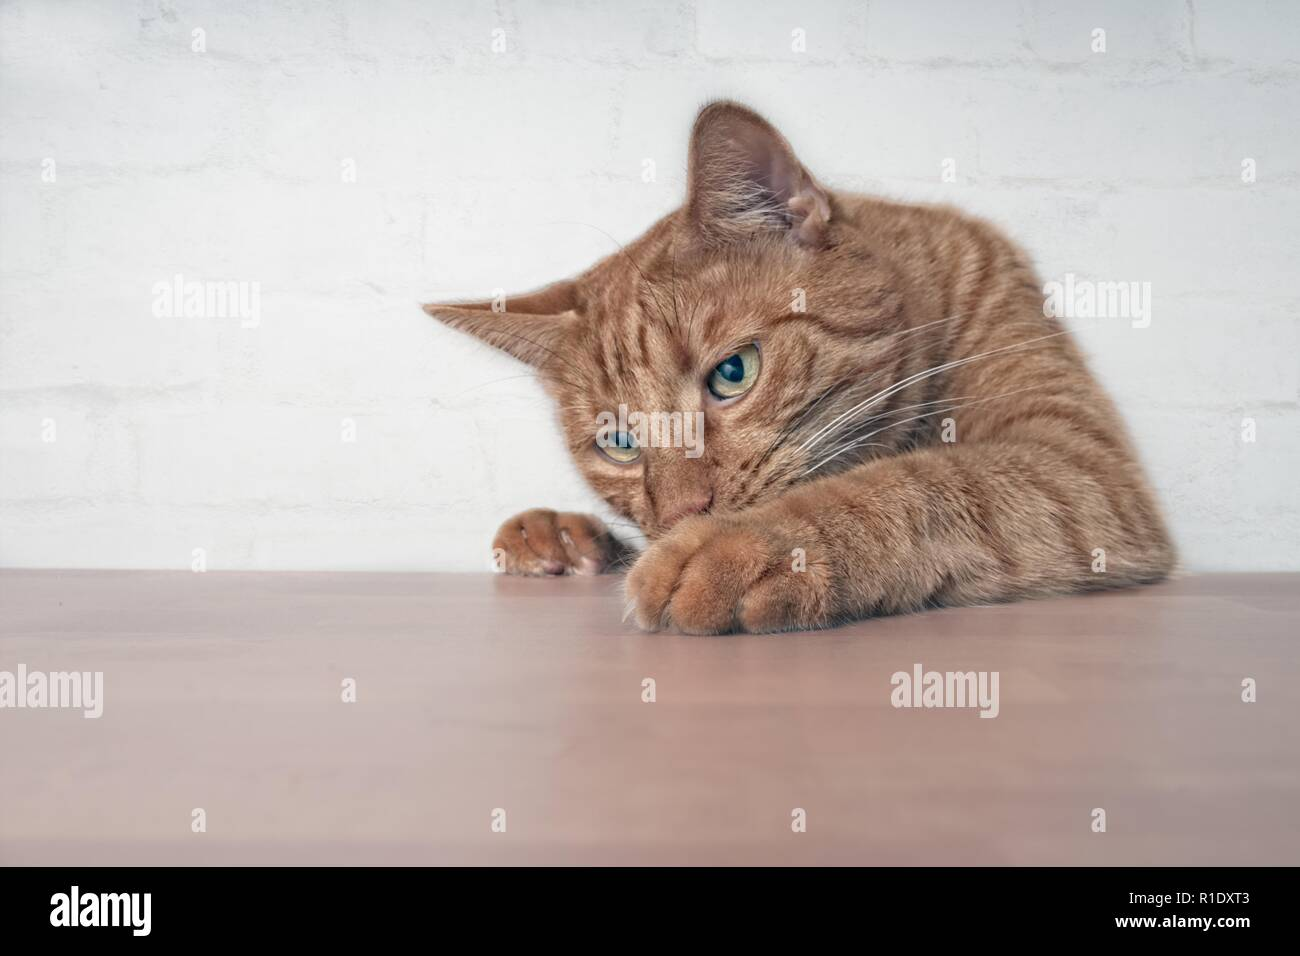 Naughty ginger cat showing paws on wooden table. - Stock Image